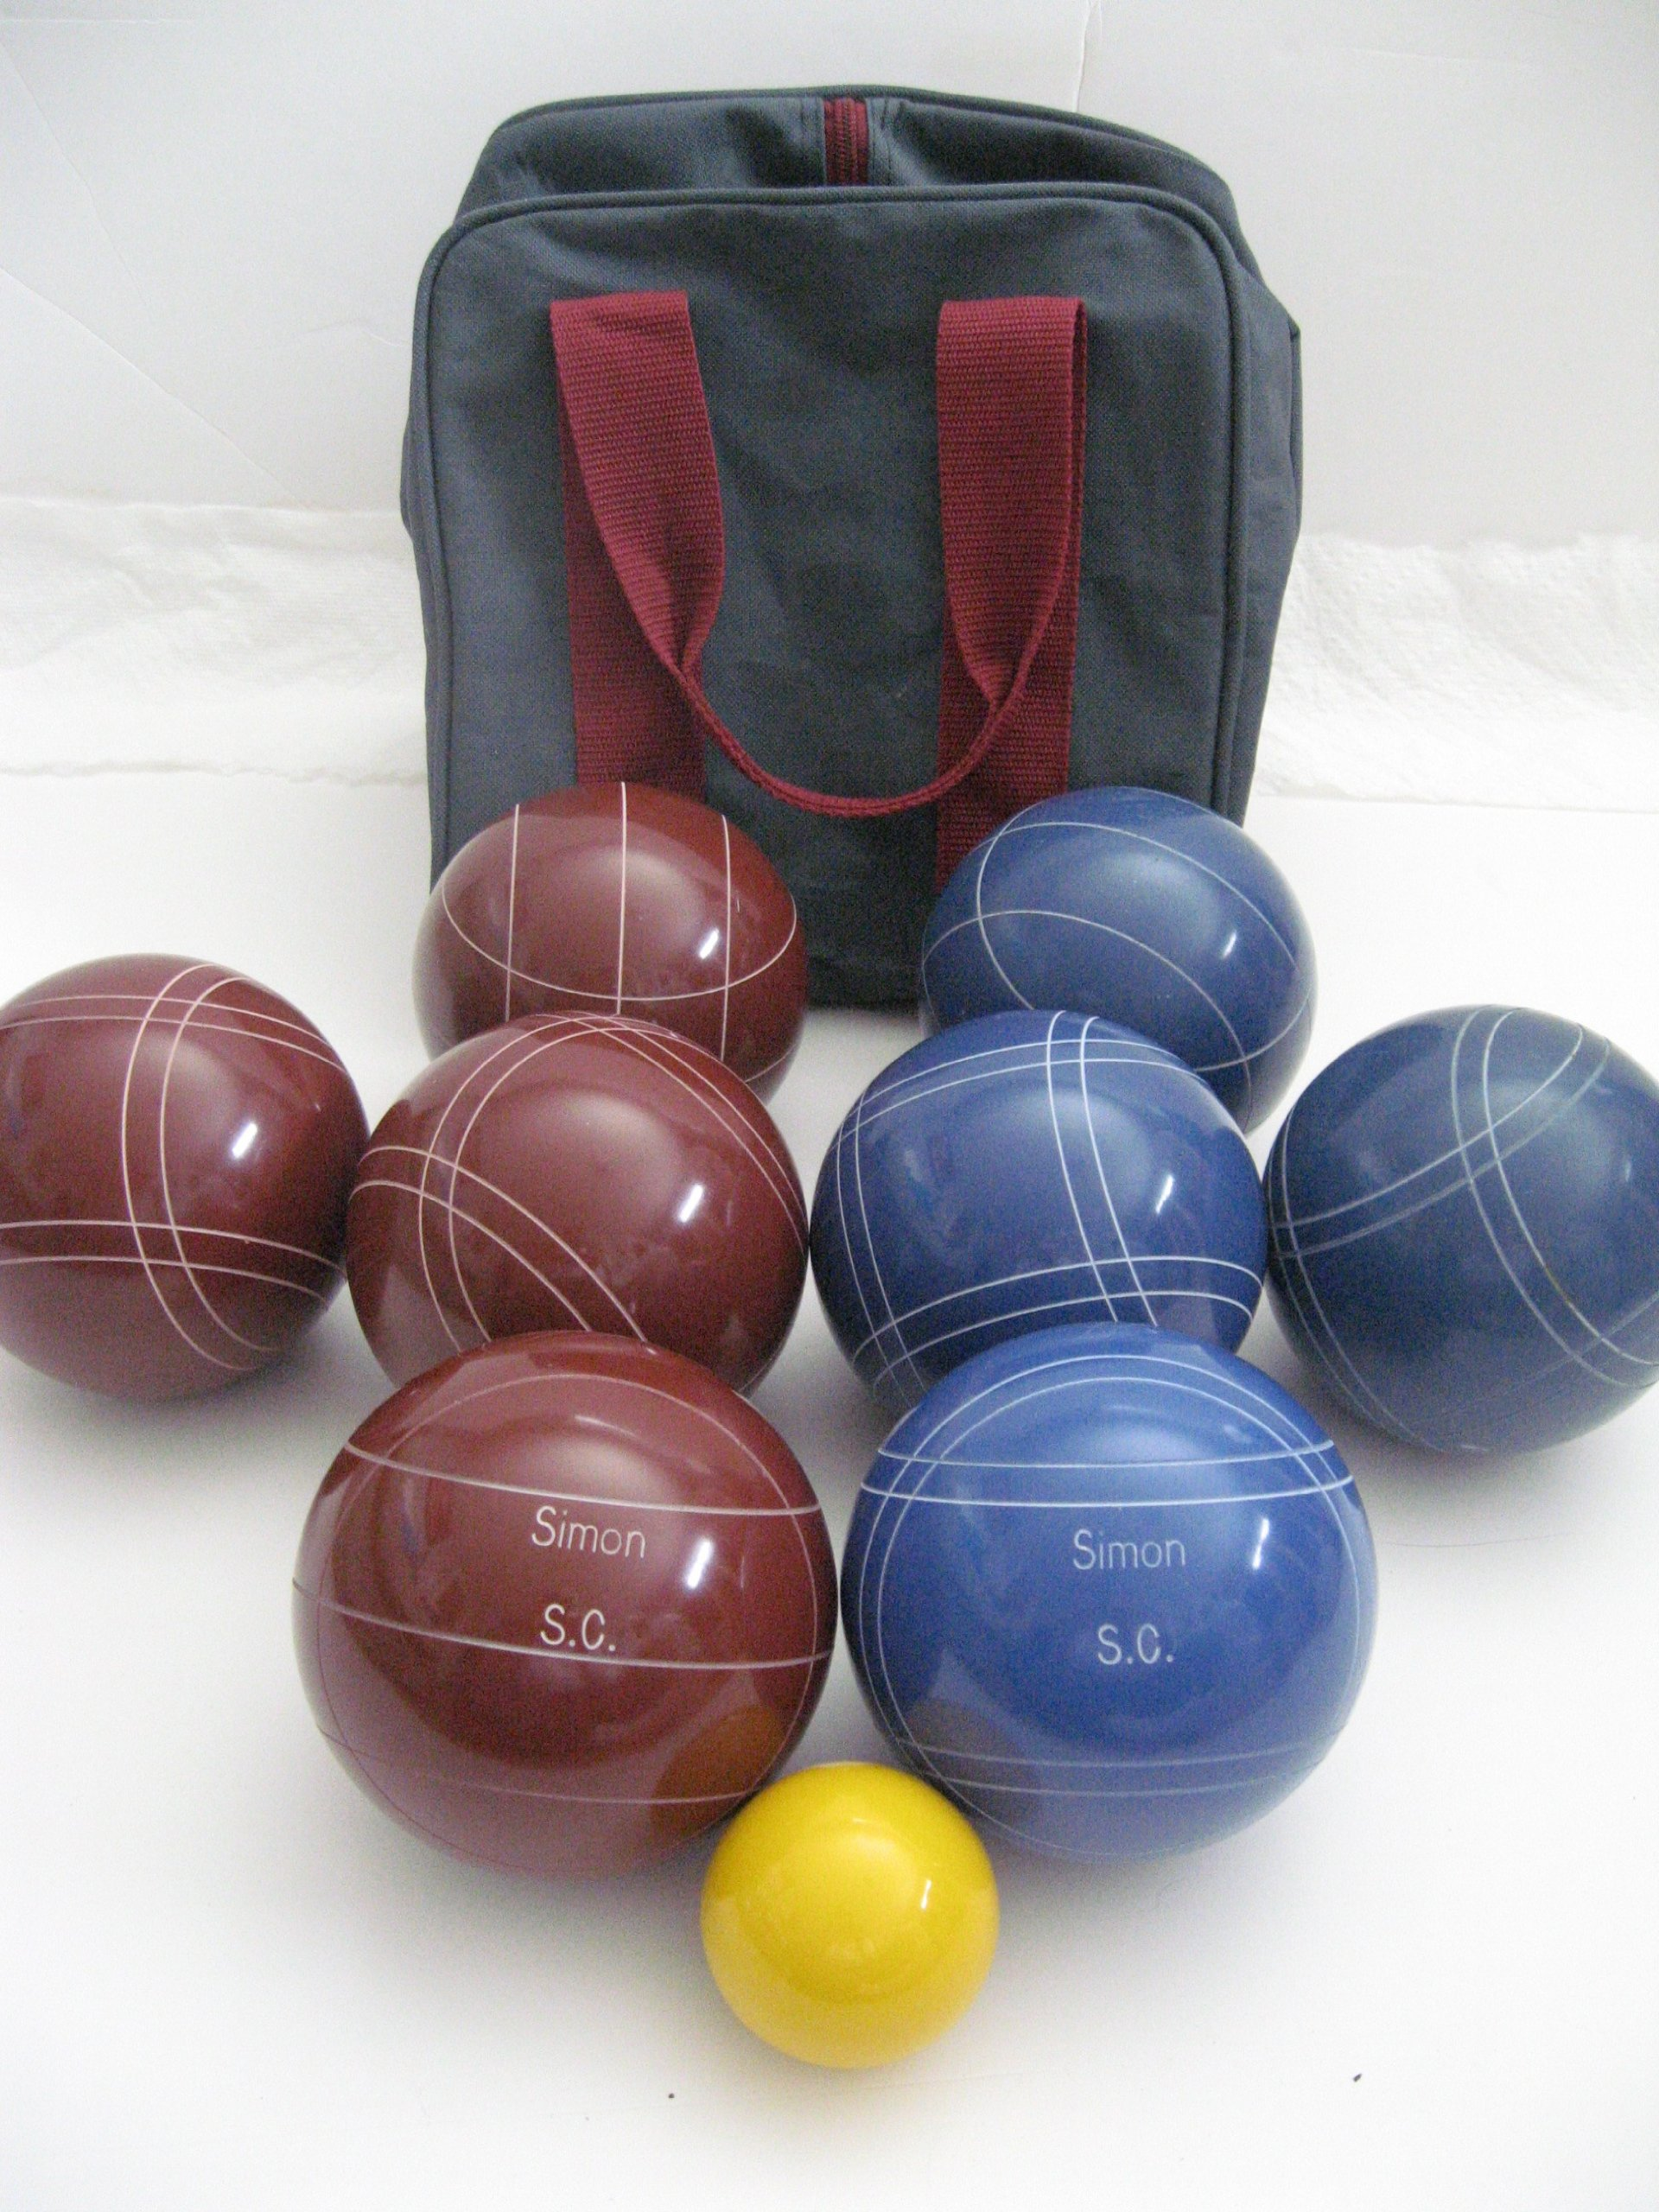 Premium Quality Engraved Bocce Package - 110mm Epco Red and Blue Balls with Engraving [Misc.] by Epco